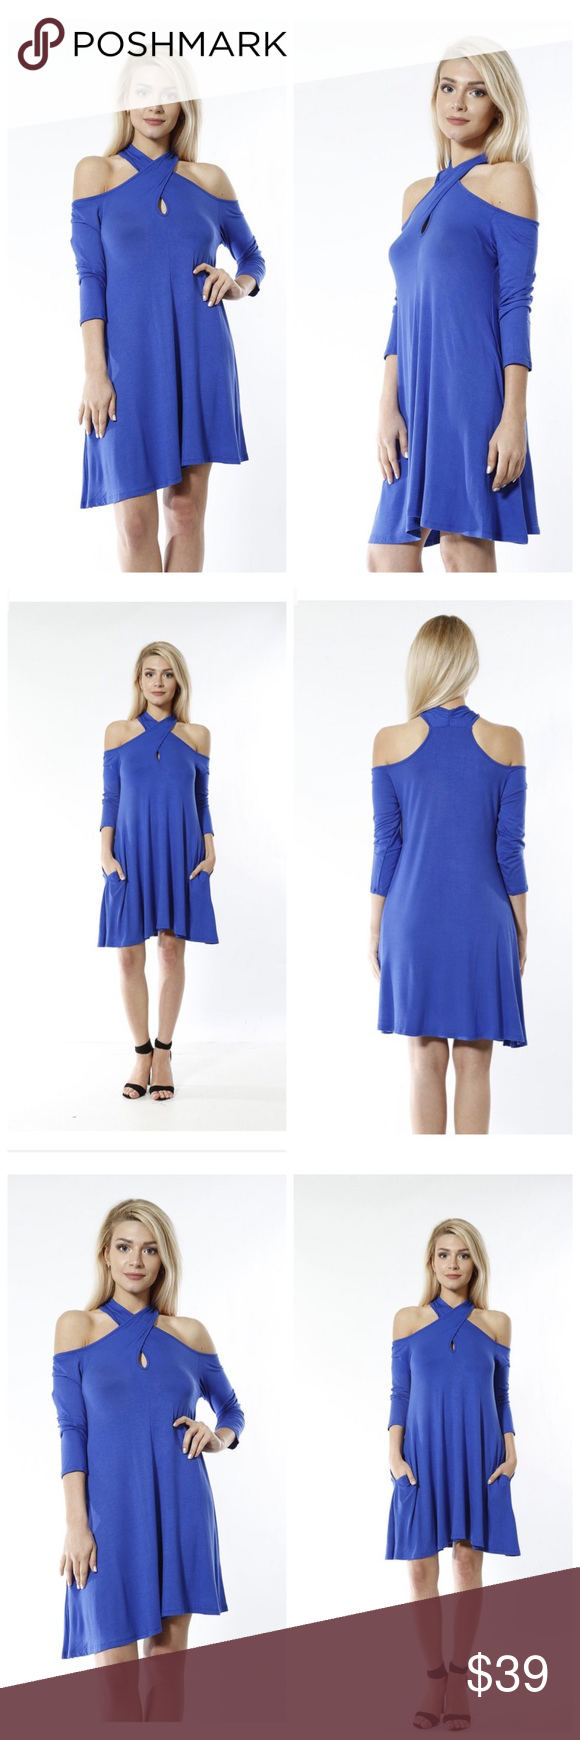 🔥Sale🔥Royal blue dress Royal blue dress. Fabric content 92% polyester 8% spandex. Made in USA 🇺🇸 . Model measurements (in) Size S, height 5'7, bust 34, waist 23, hips 35. Add to bundle to save Gali's Fashion Dresses Mini